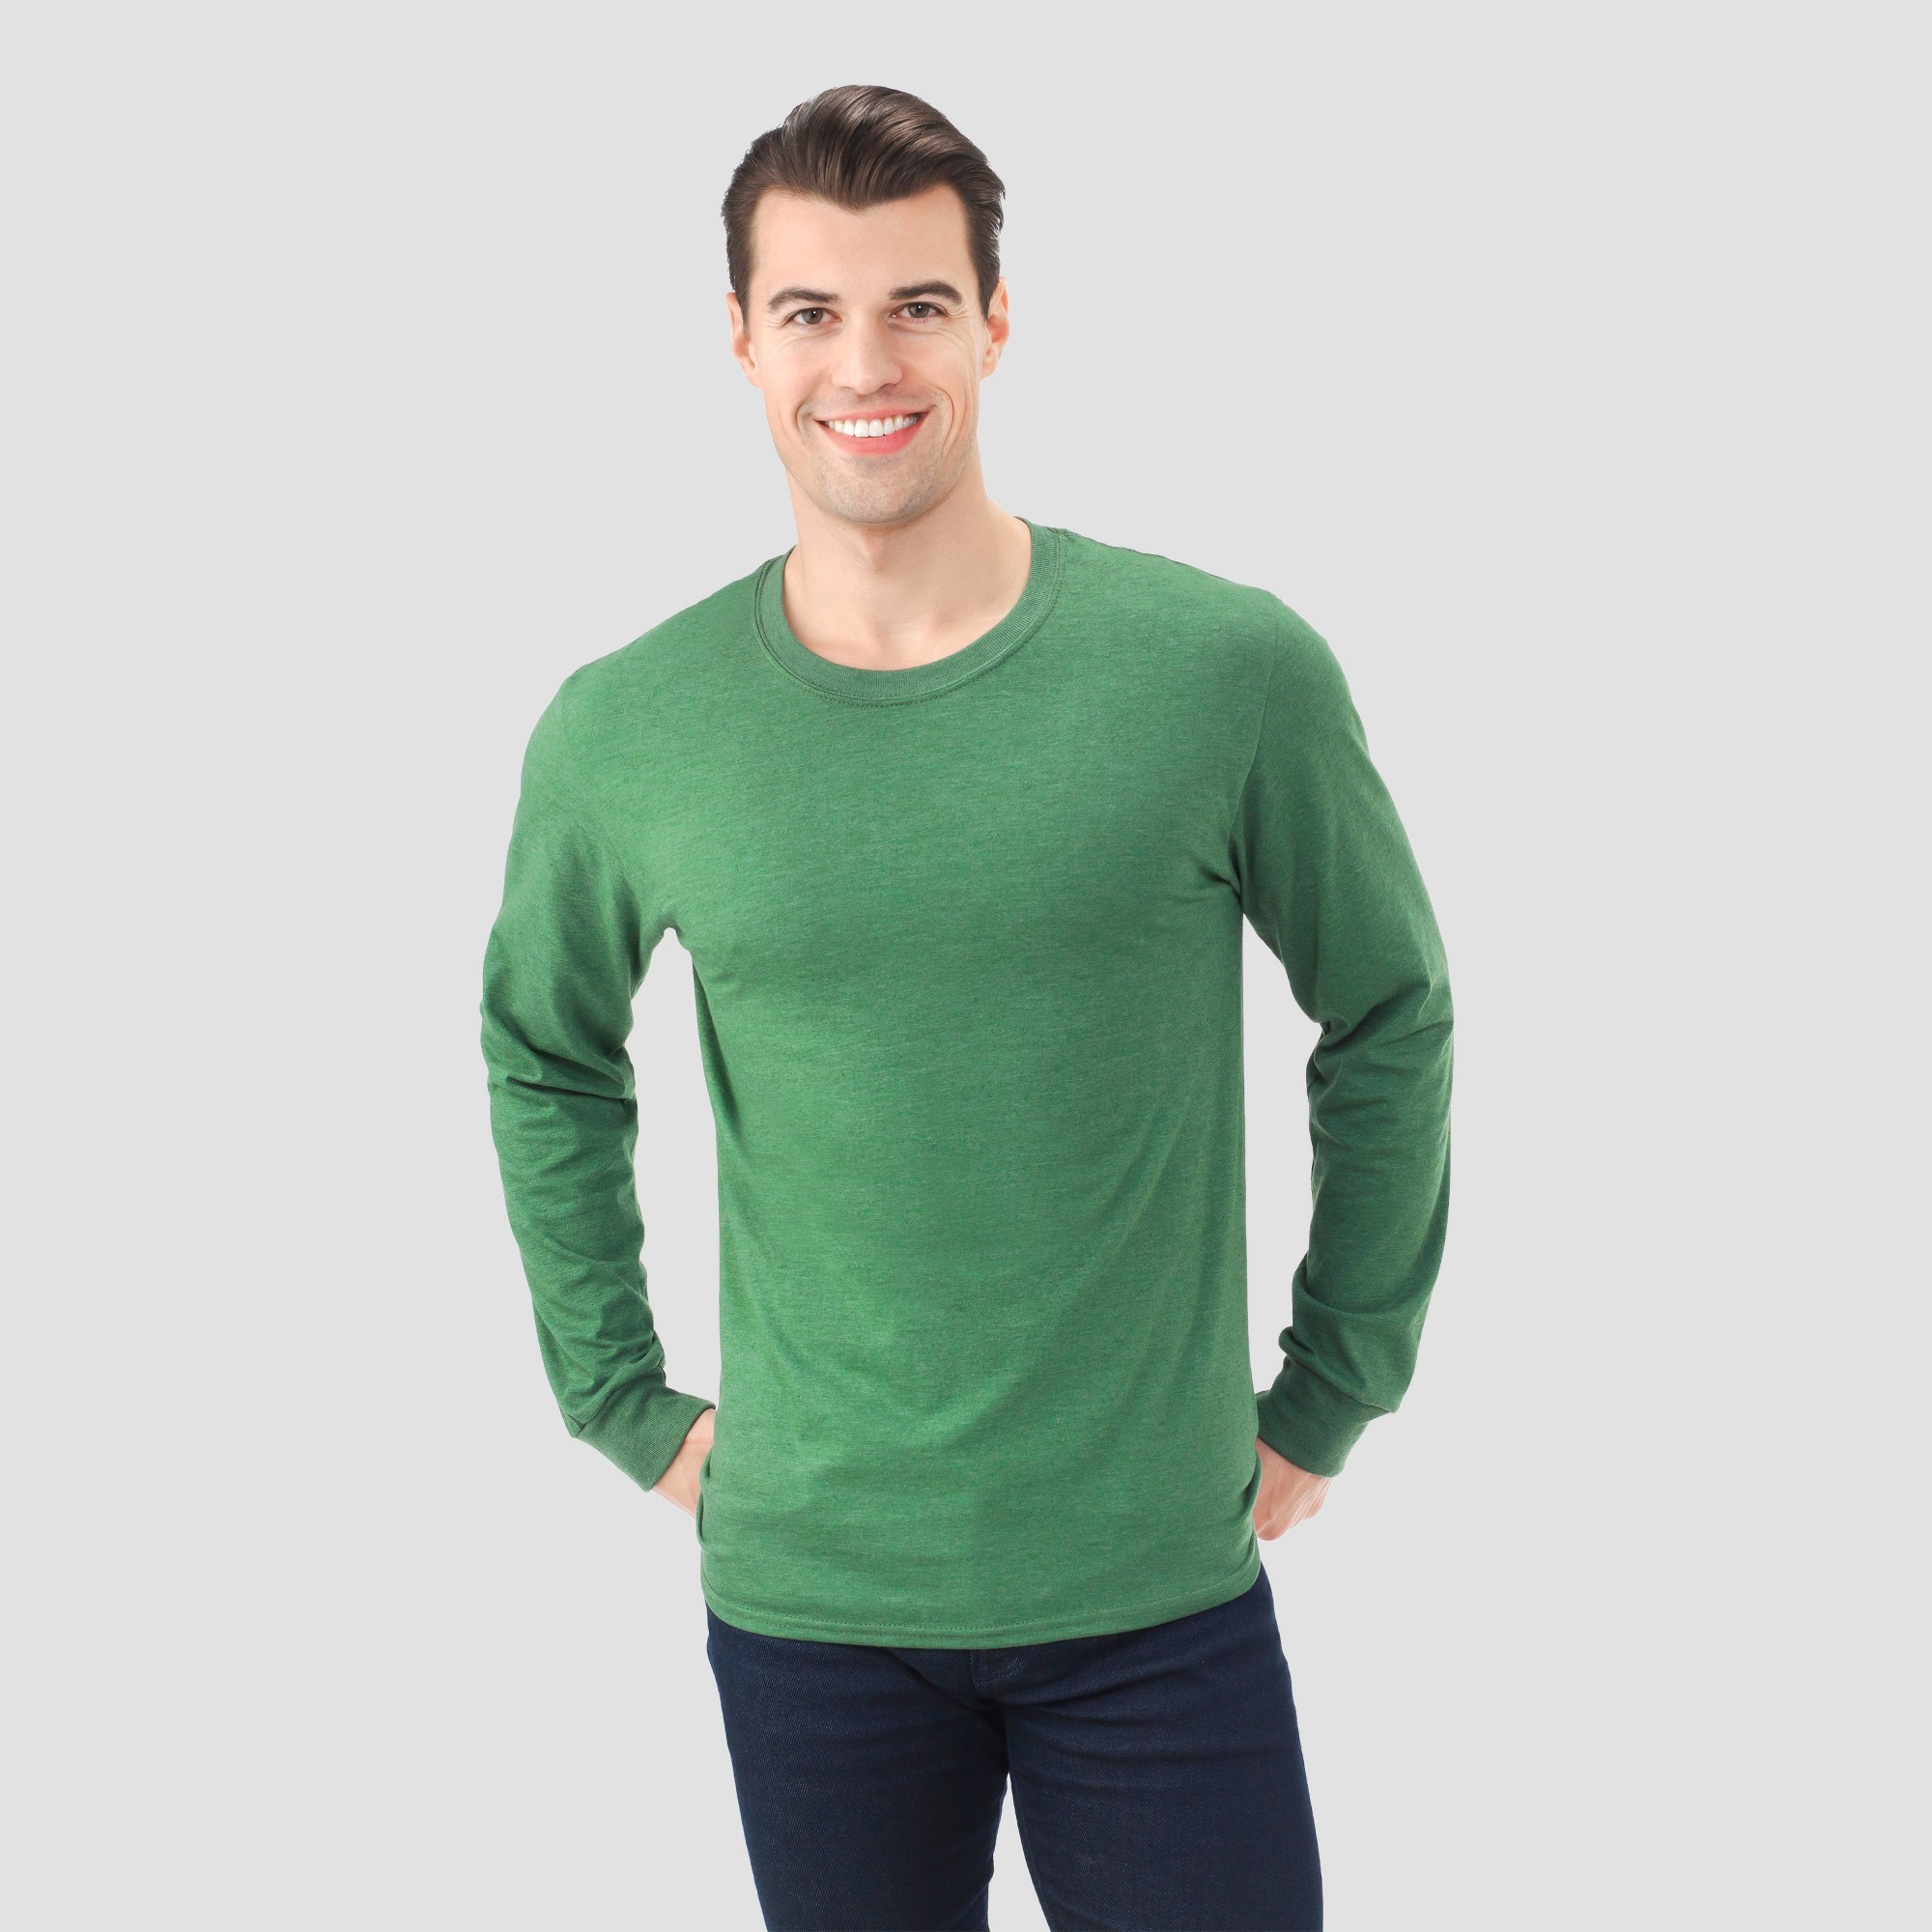 3a19f73adbe62 Fruit Of The Loom Men s Long Sleeve T-Shirt - Holly Green Heather ...